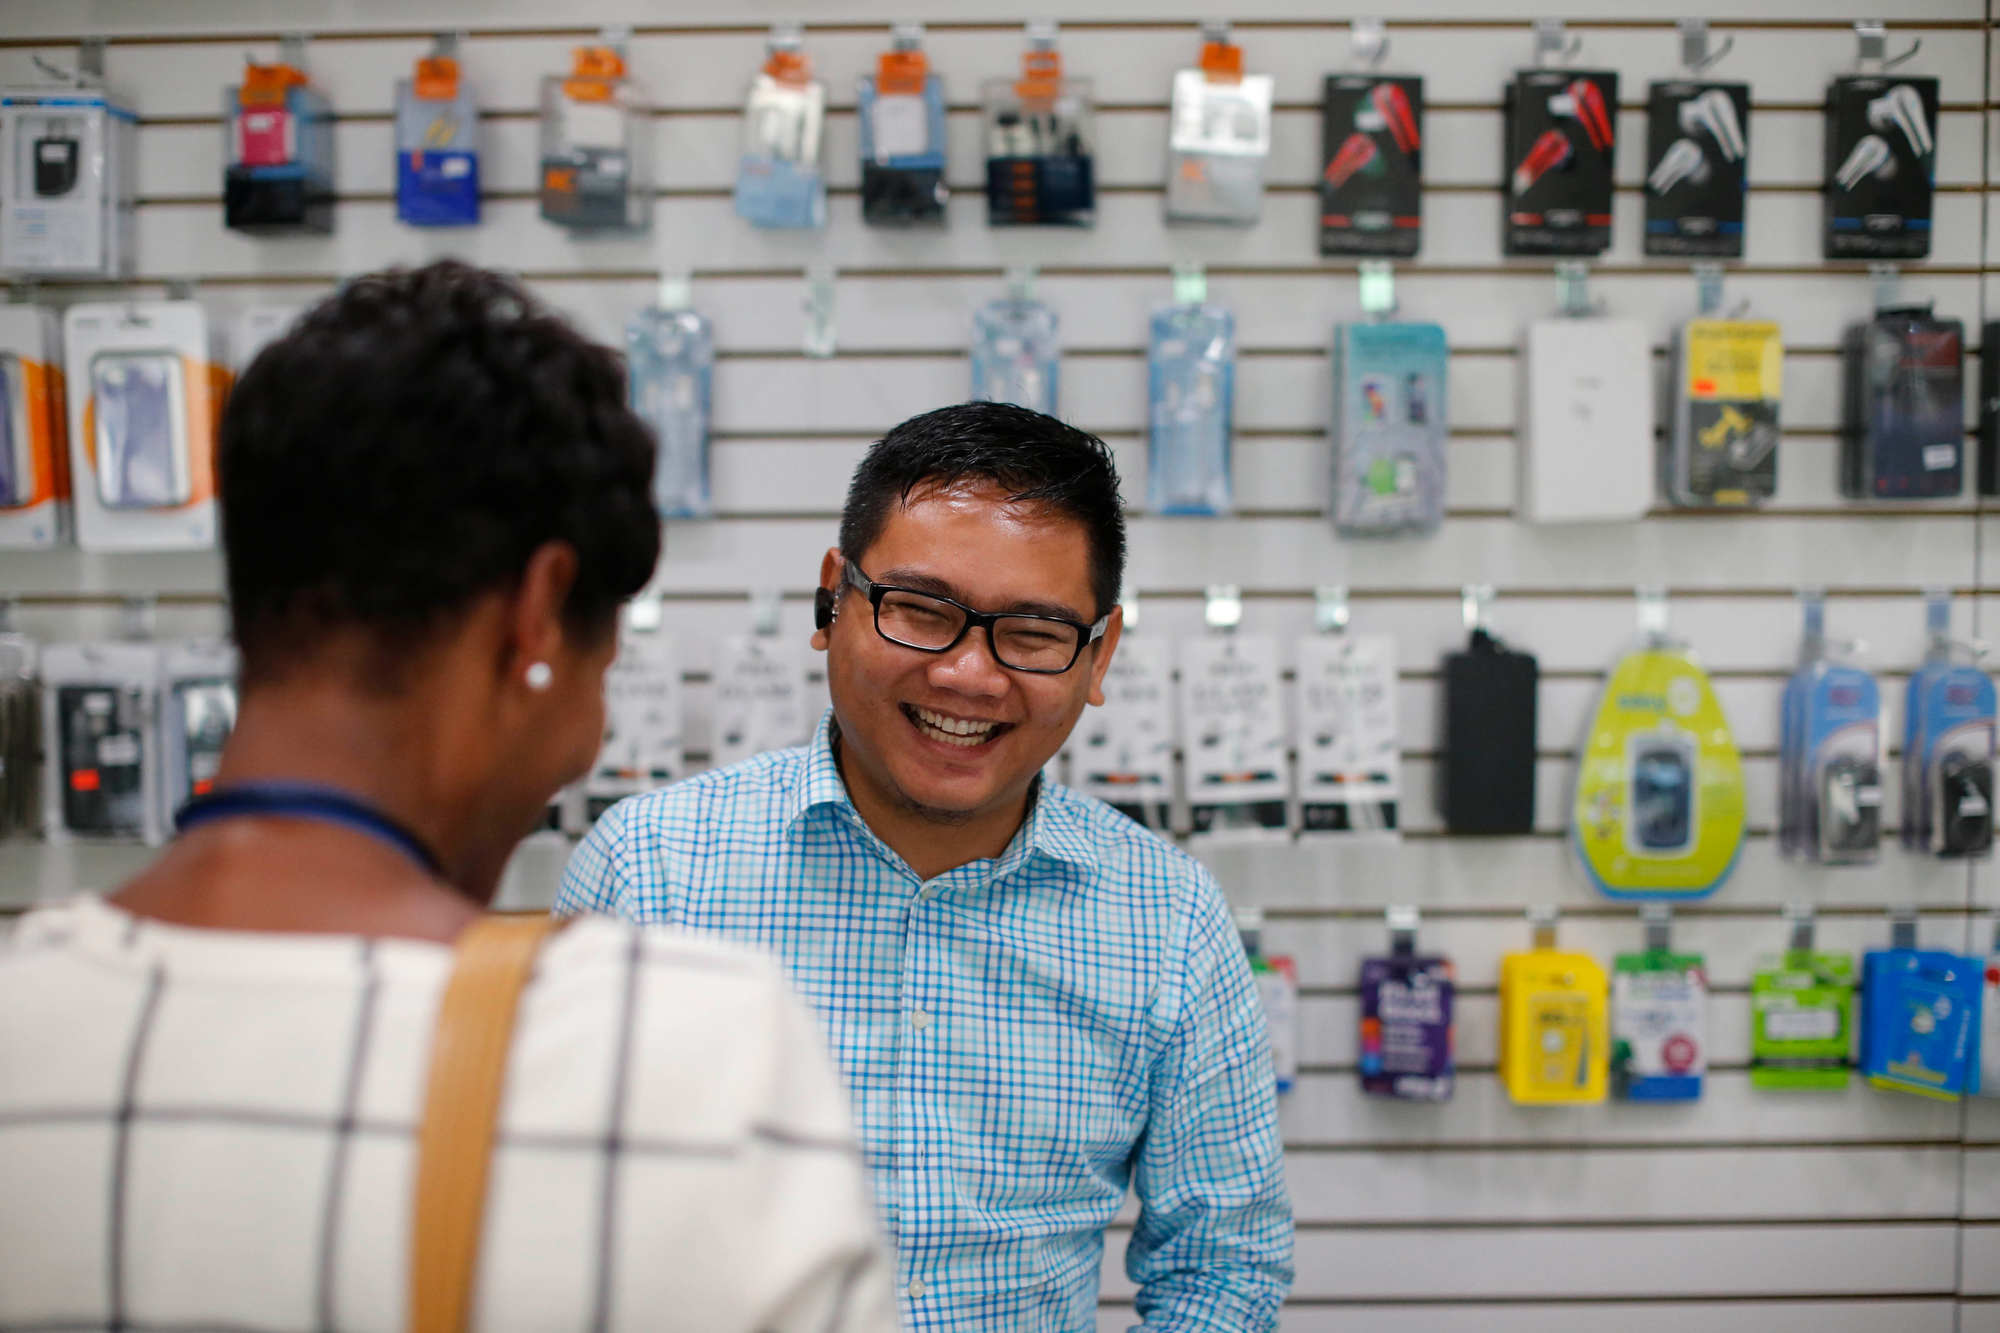 Aung Kaung Myat helps a customer at the counter of his iT Garden store on Grant Street, Sept. 20, 2016. (Derek Gee/Buffalo News)